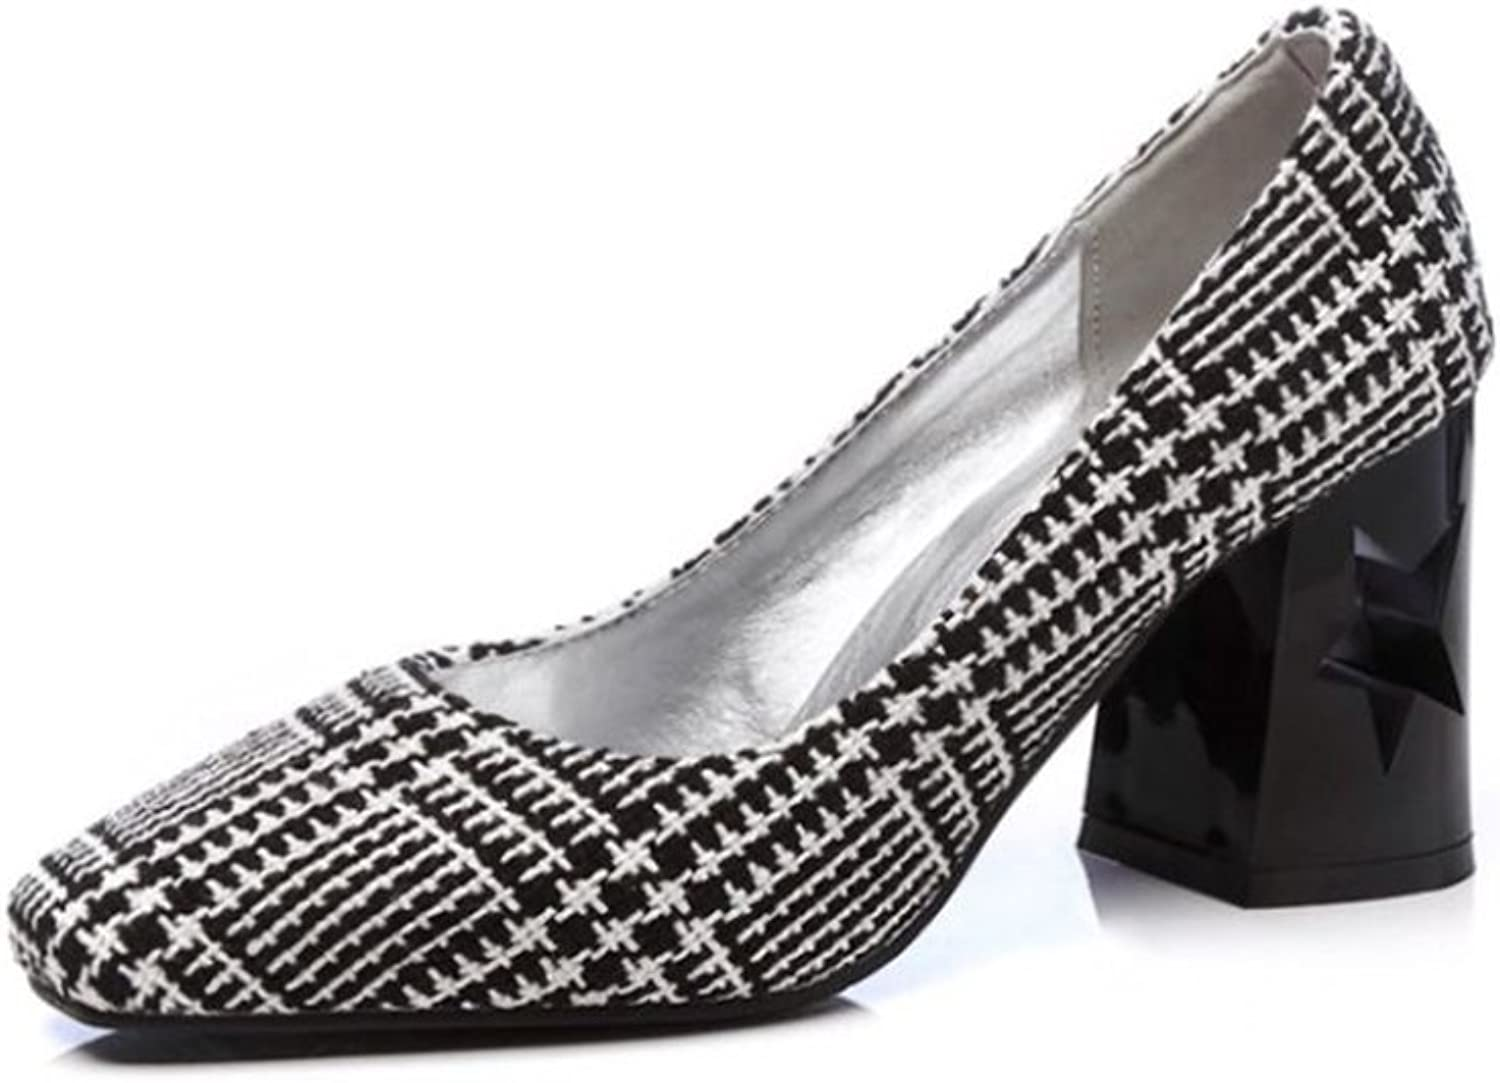 Linson123 Women's high Heels Thick with Plaid Ladies high-Heeled Evening shoes Wild